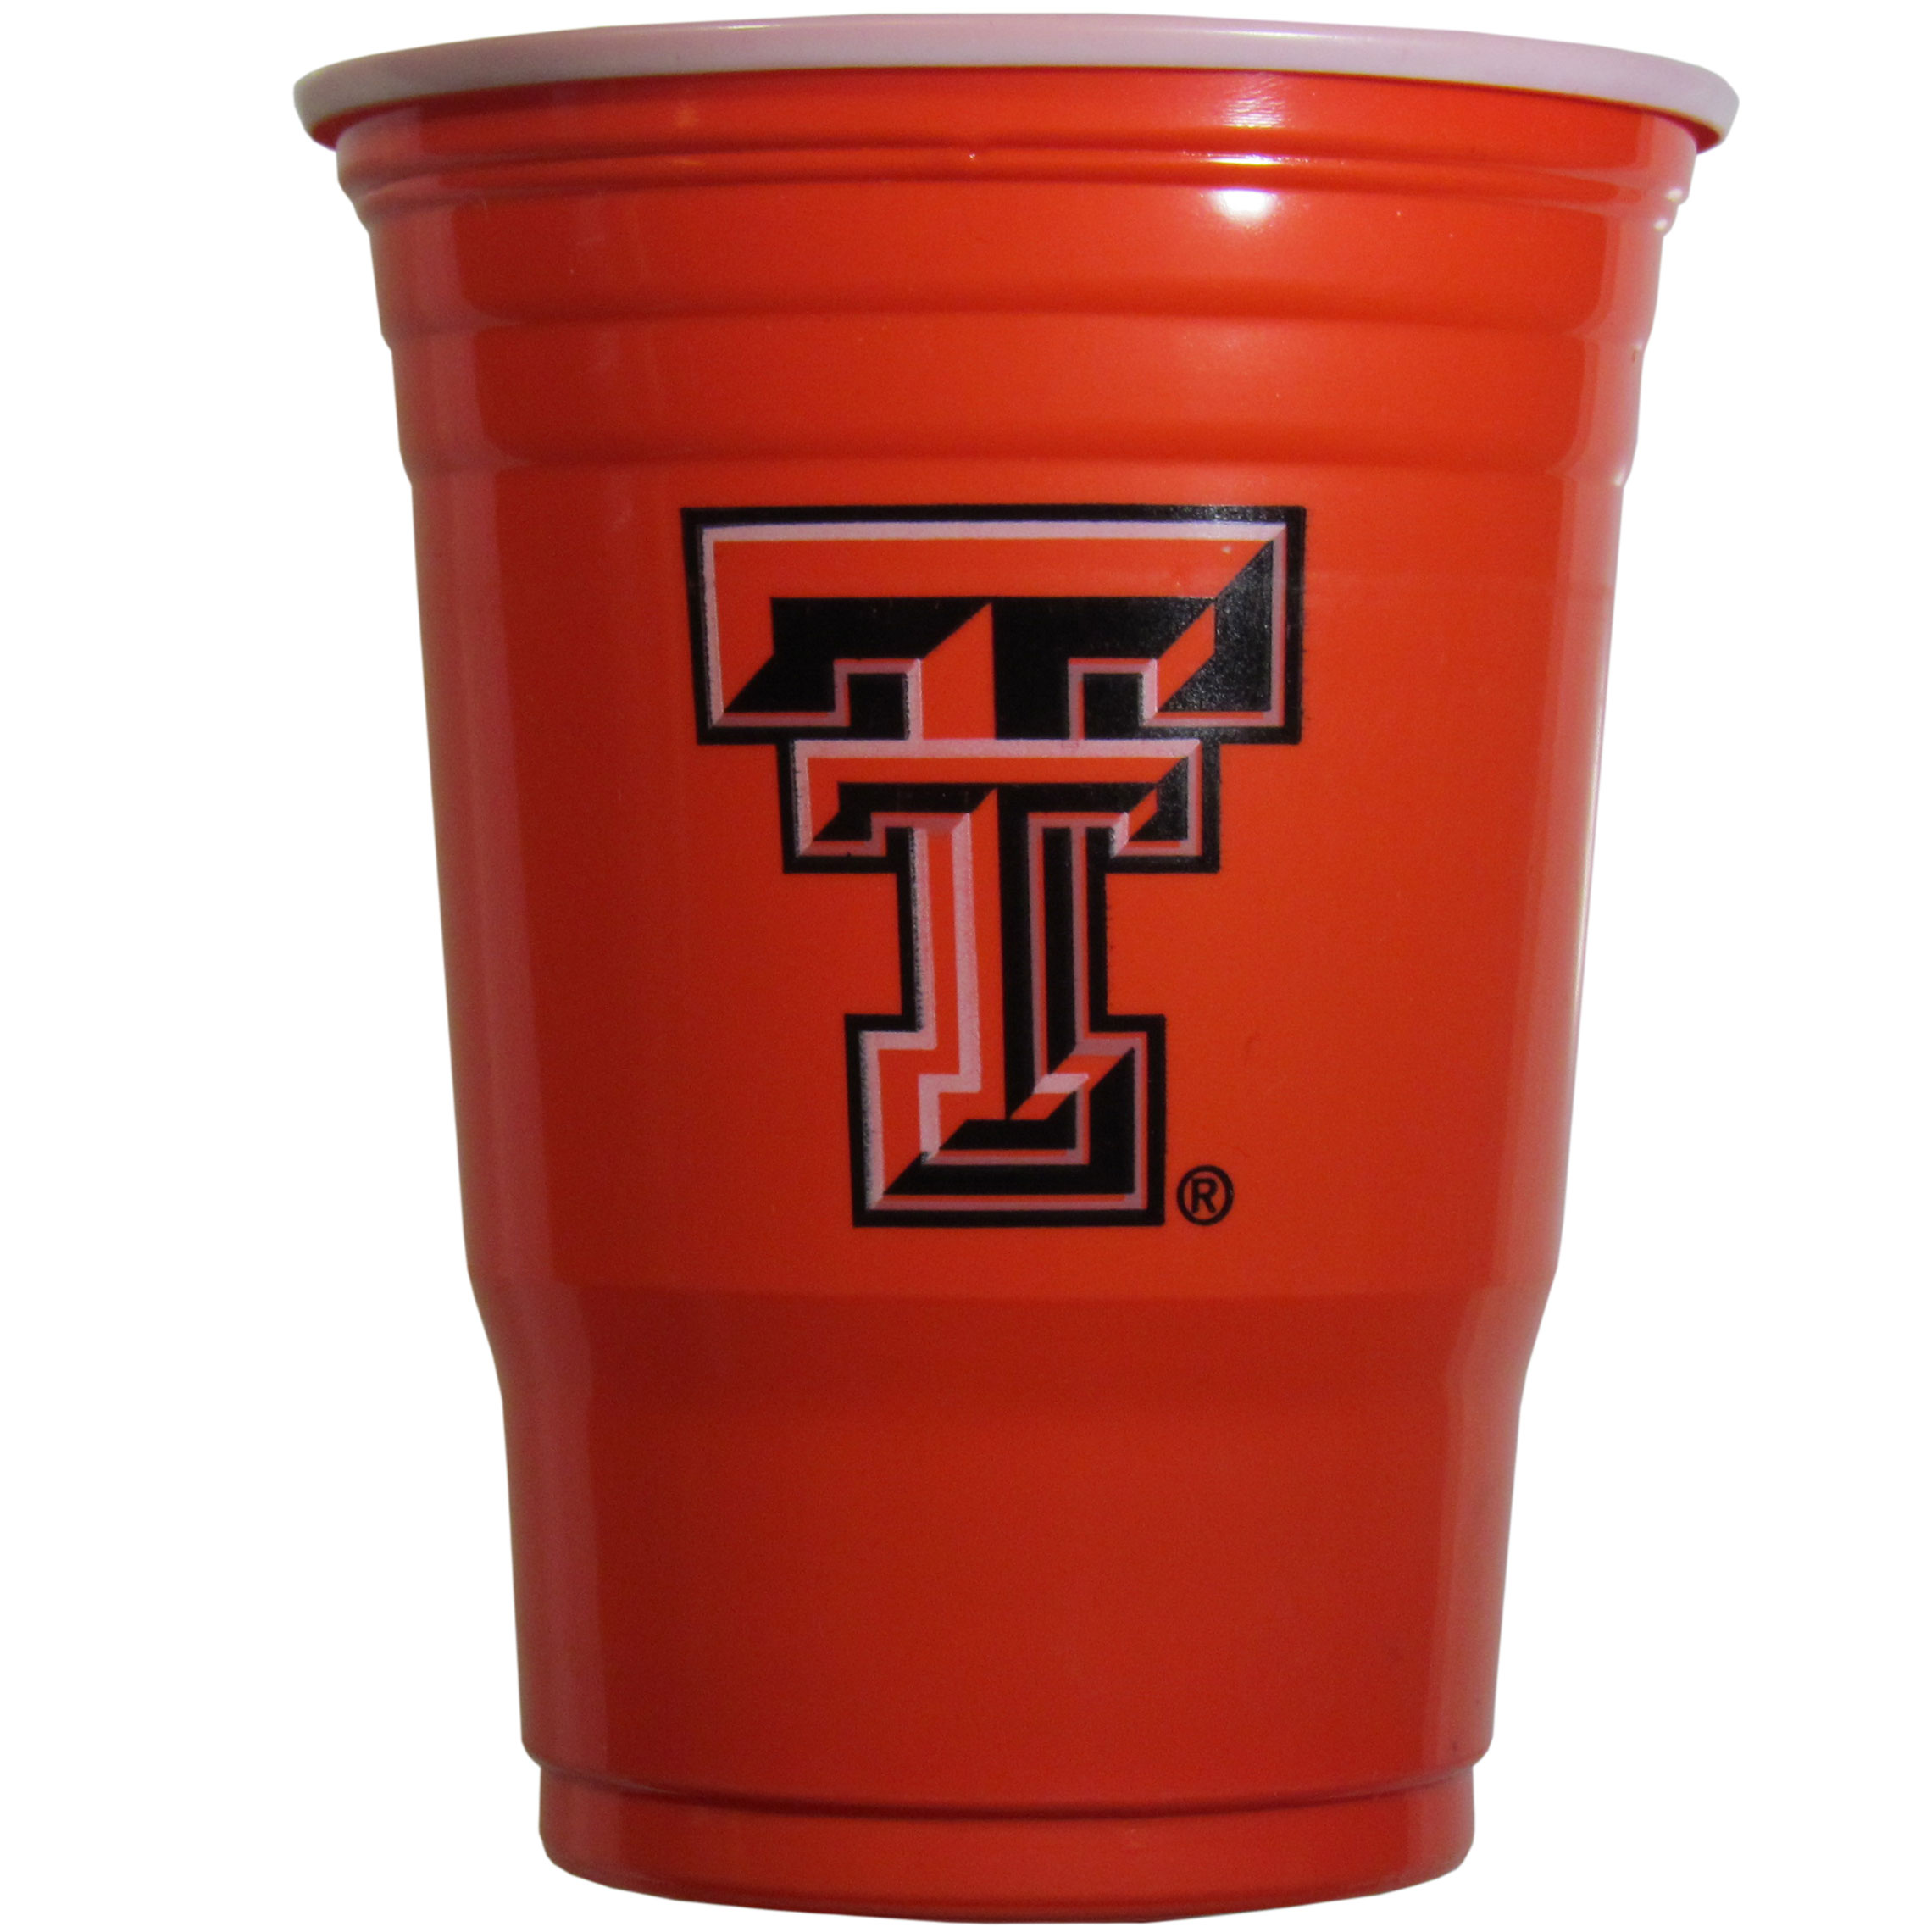 Texas Tech Raiders Plastic Game Day Cups 2 sleeves of 18 (36 Cups) - Our 18 ounce game day cups are what every tailgating or backyard events needs! The cups feature a big Texas Tech Raiders logo so you can show off your team pride. The popular 18 ounce size is perfect for drinks or ping pong balls! 2 sleeves of 18 cups, 36 cups in total.